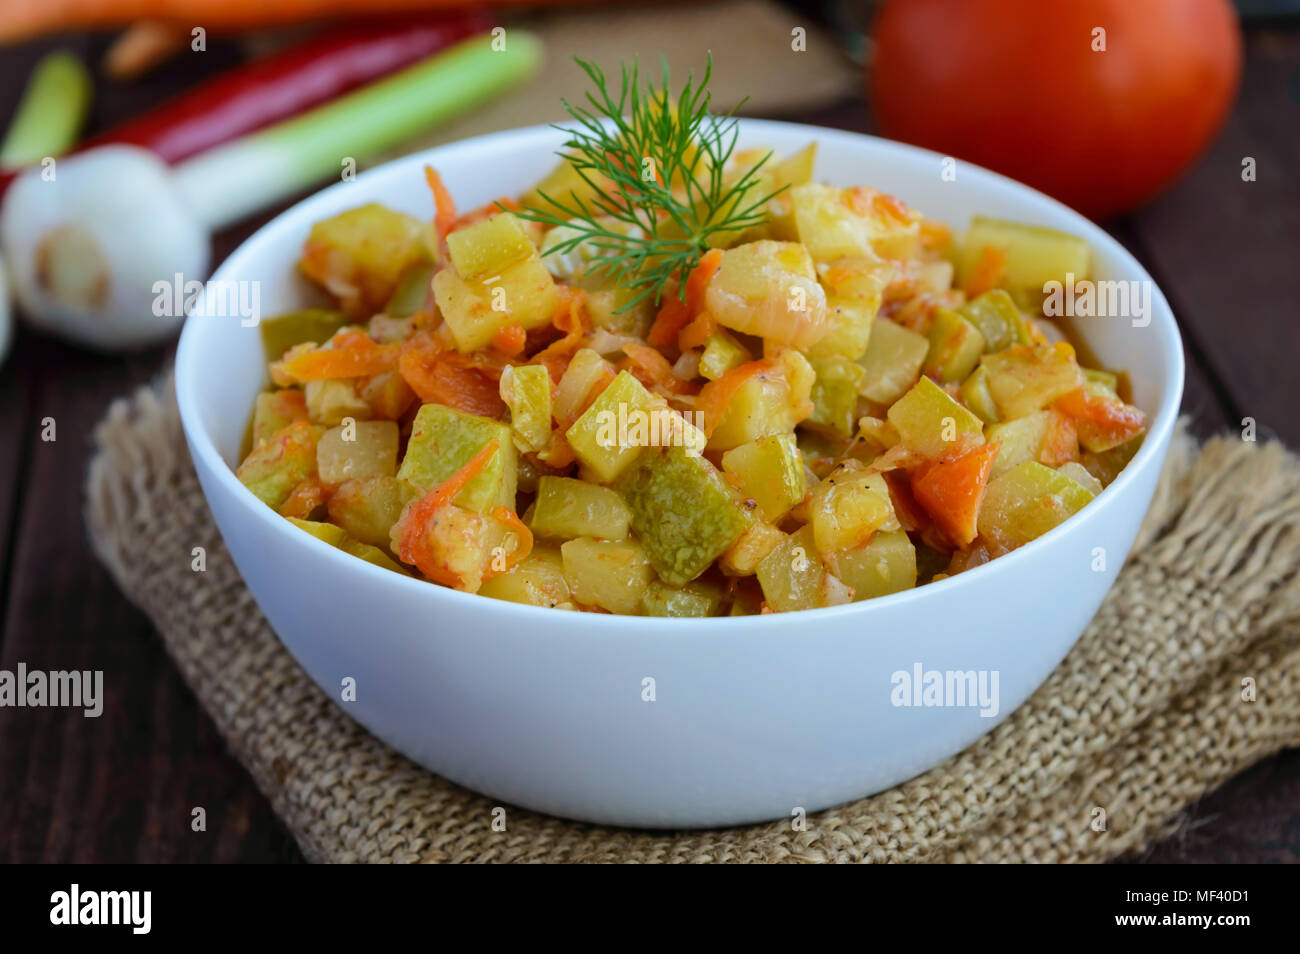 Ragout from zucchini, carrots and tomatoes. Recipes of vegetable stew